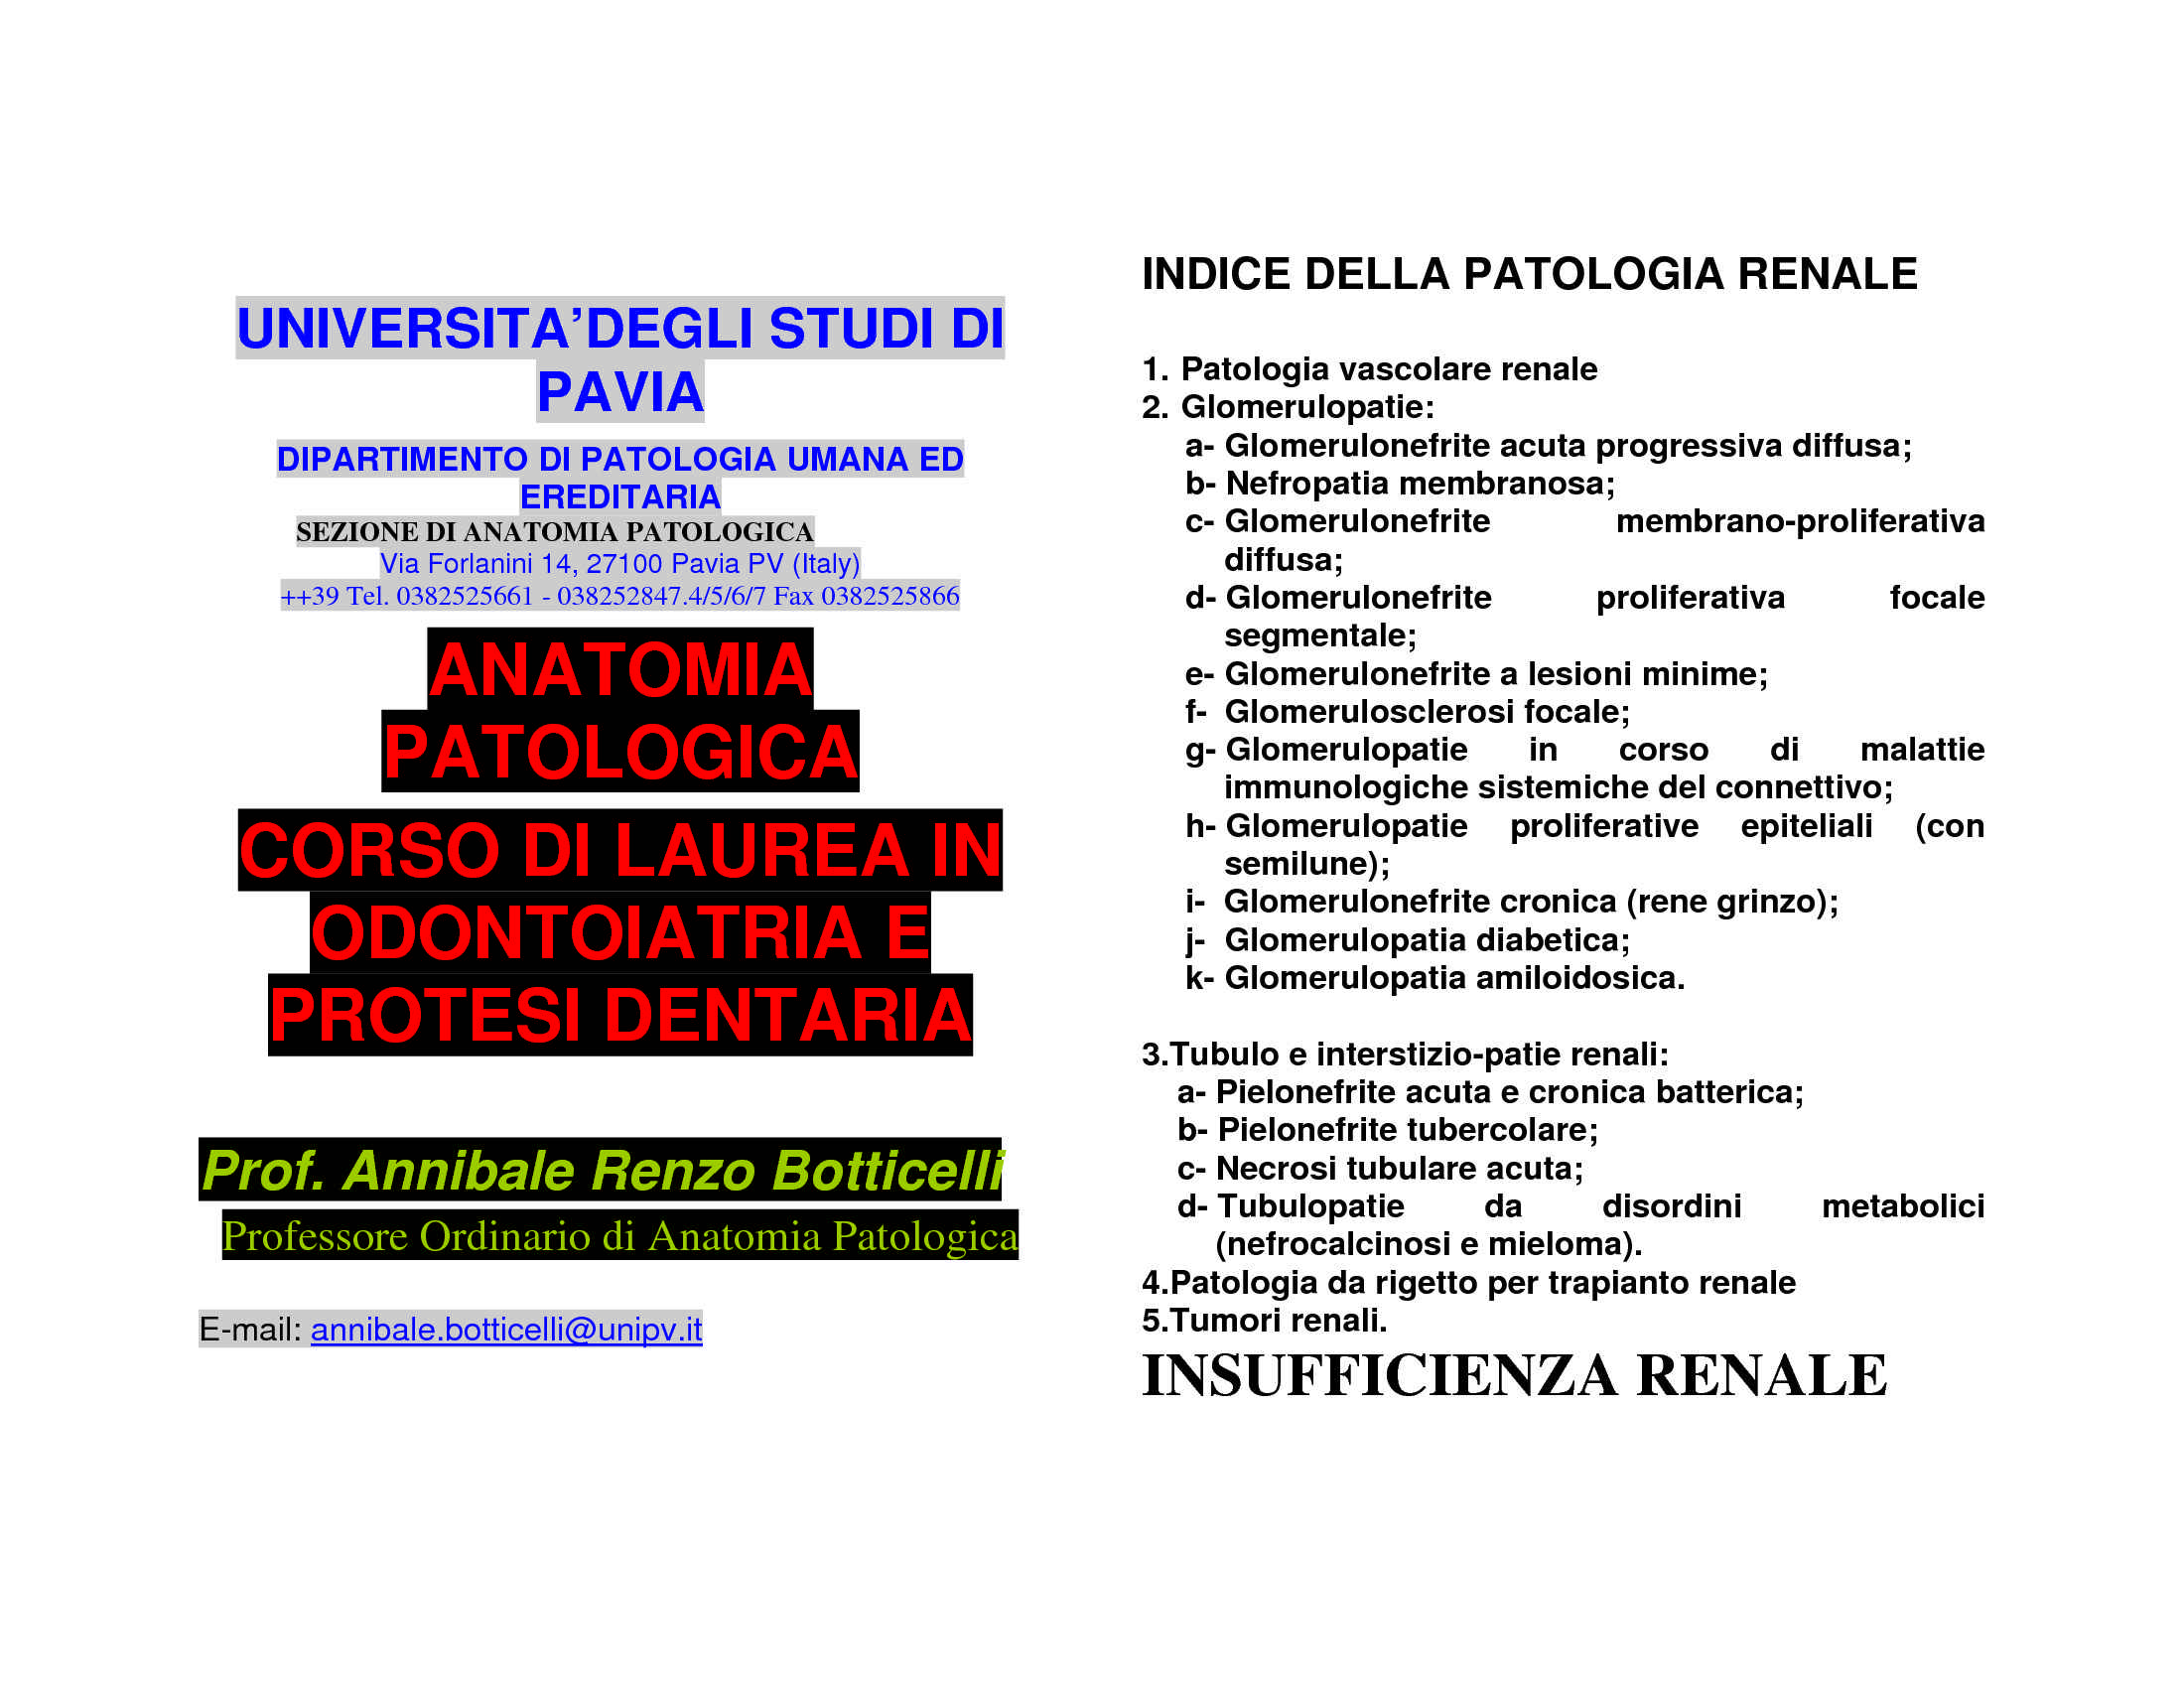 Patologie dell'apparato urogenitale